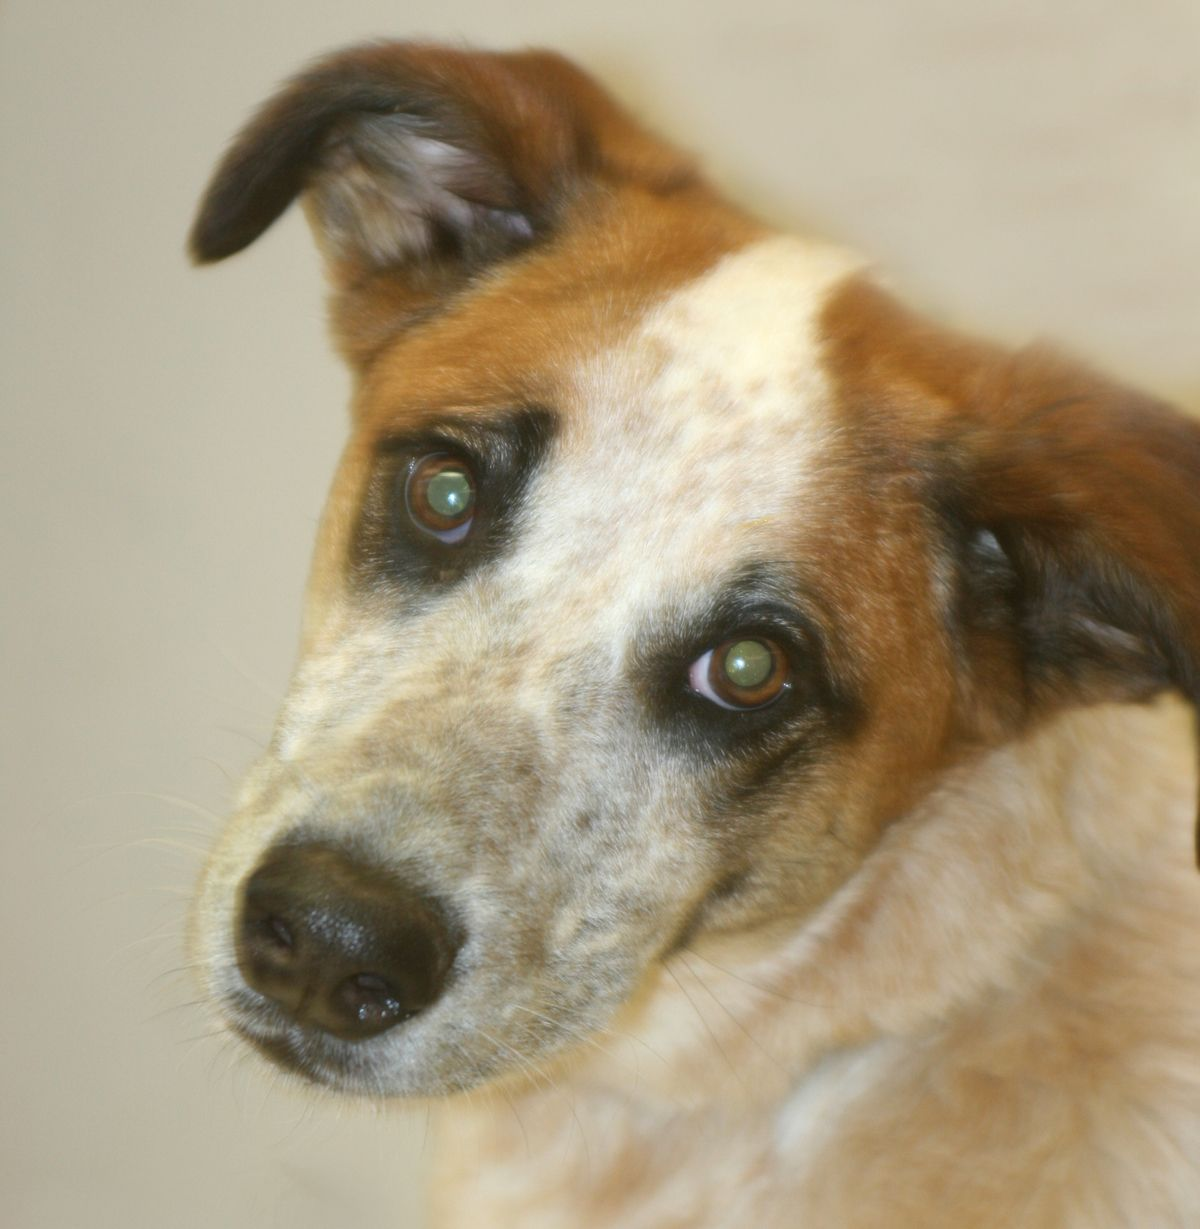 Adopt Vaughn on Dogs, puppies, Dogs, Humane society